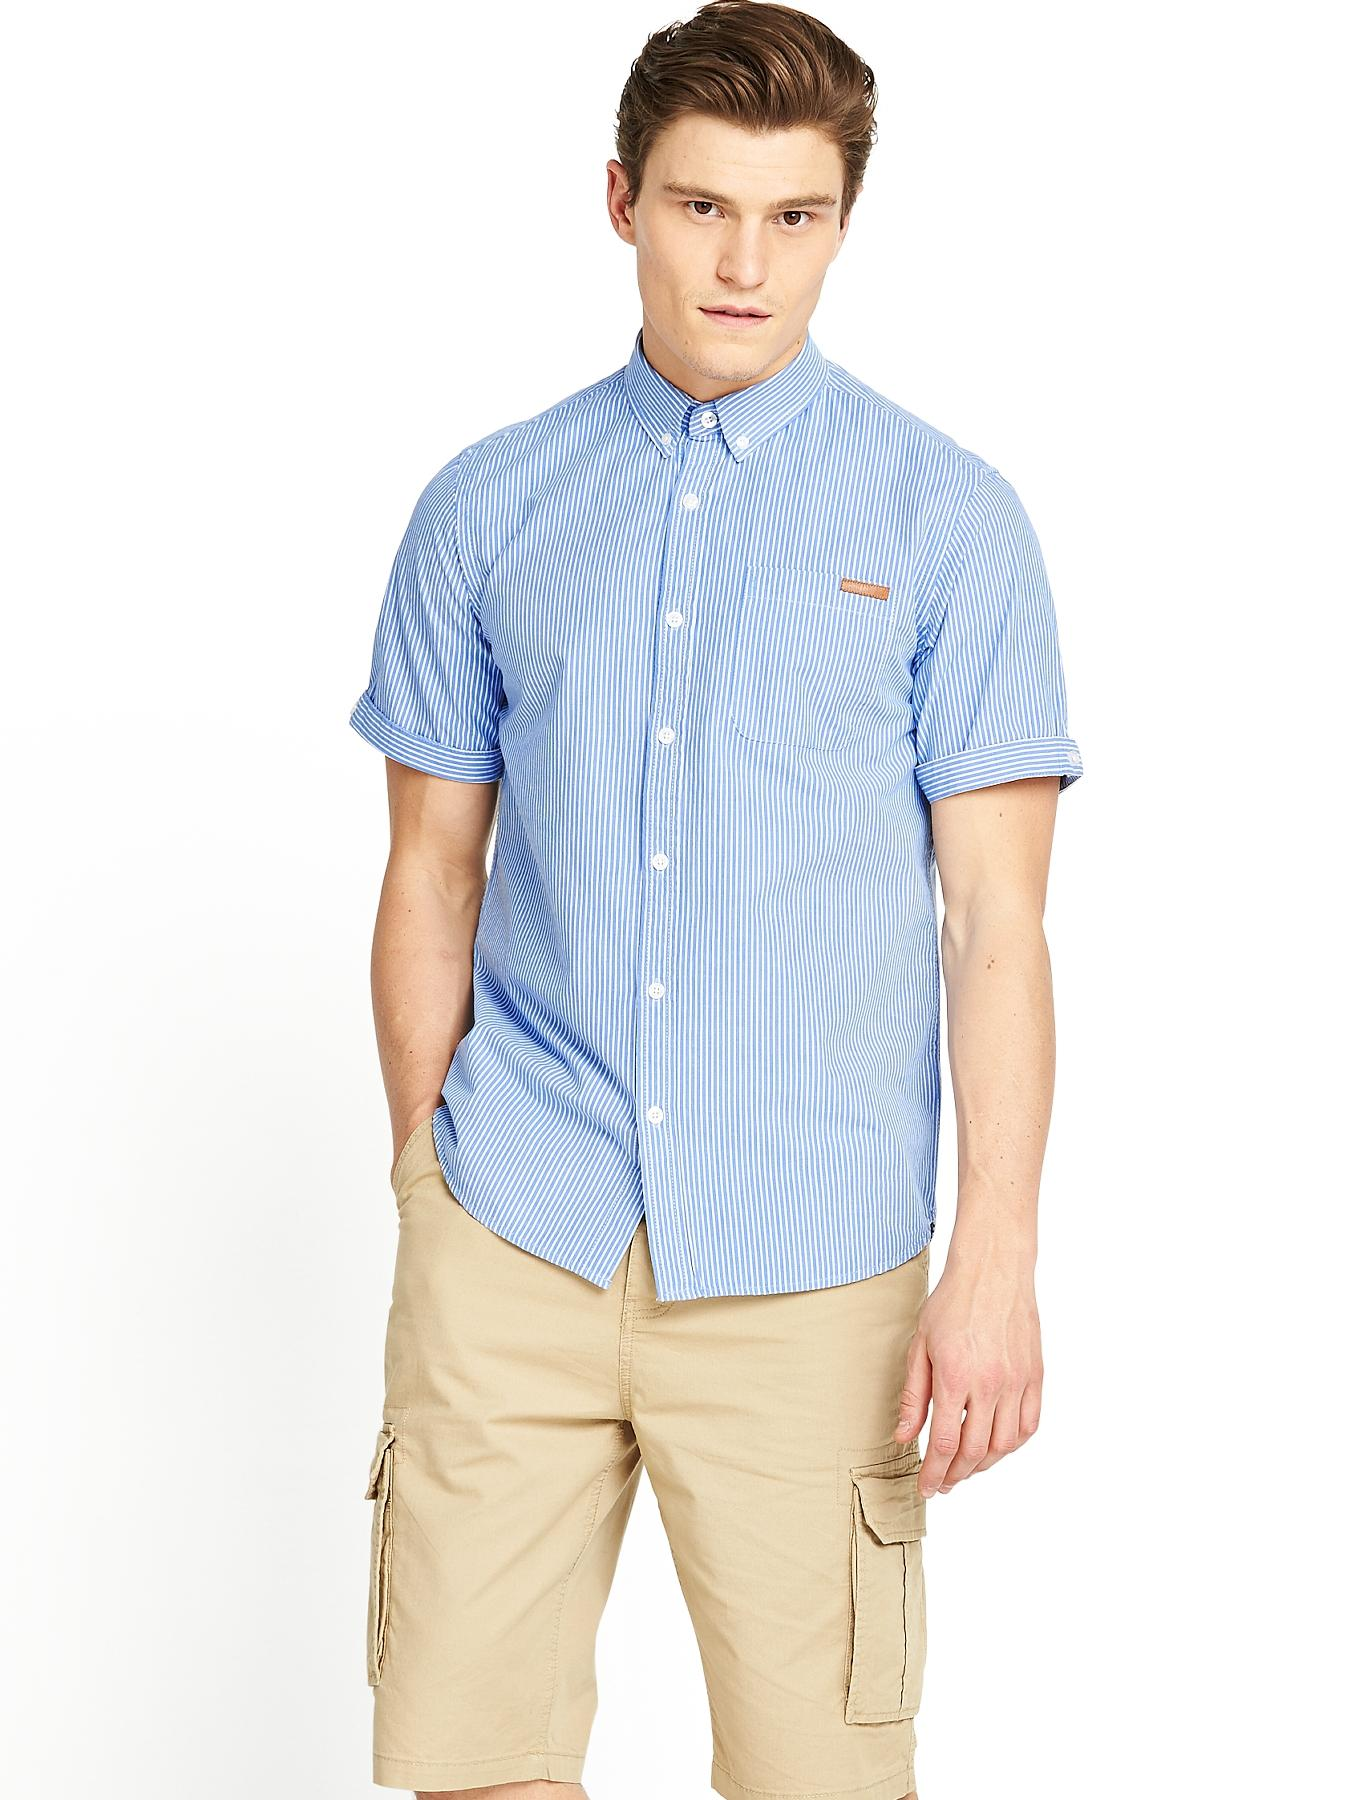 Mens Pelham Stripe Shirt - Regatta Blue, Blue